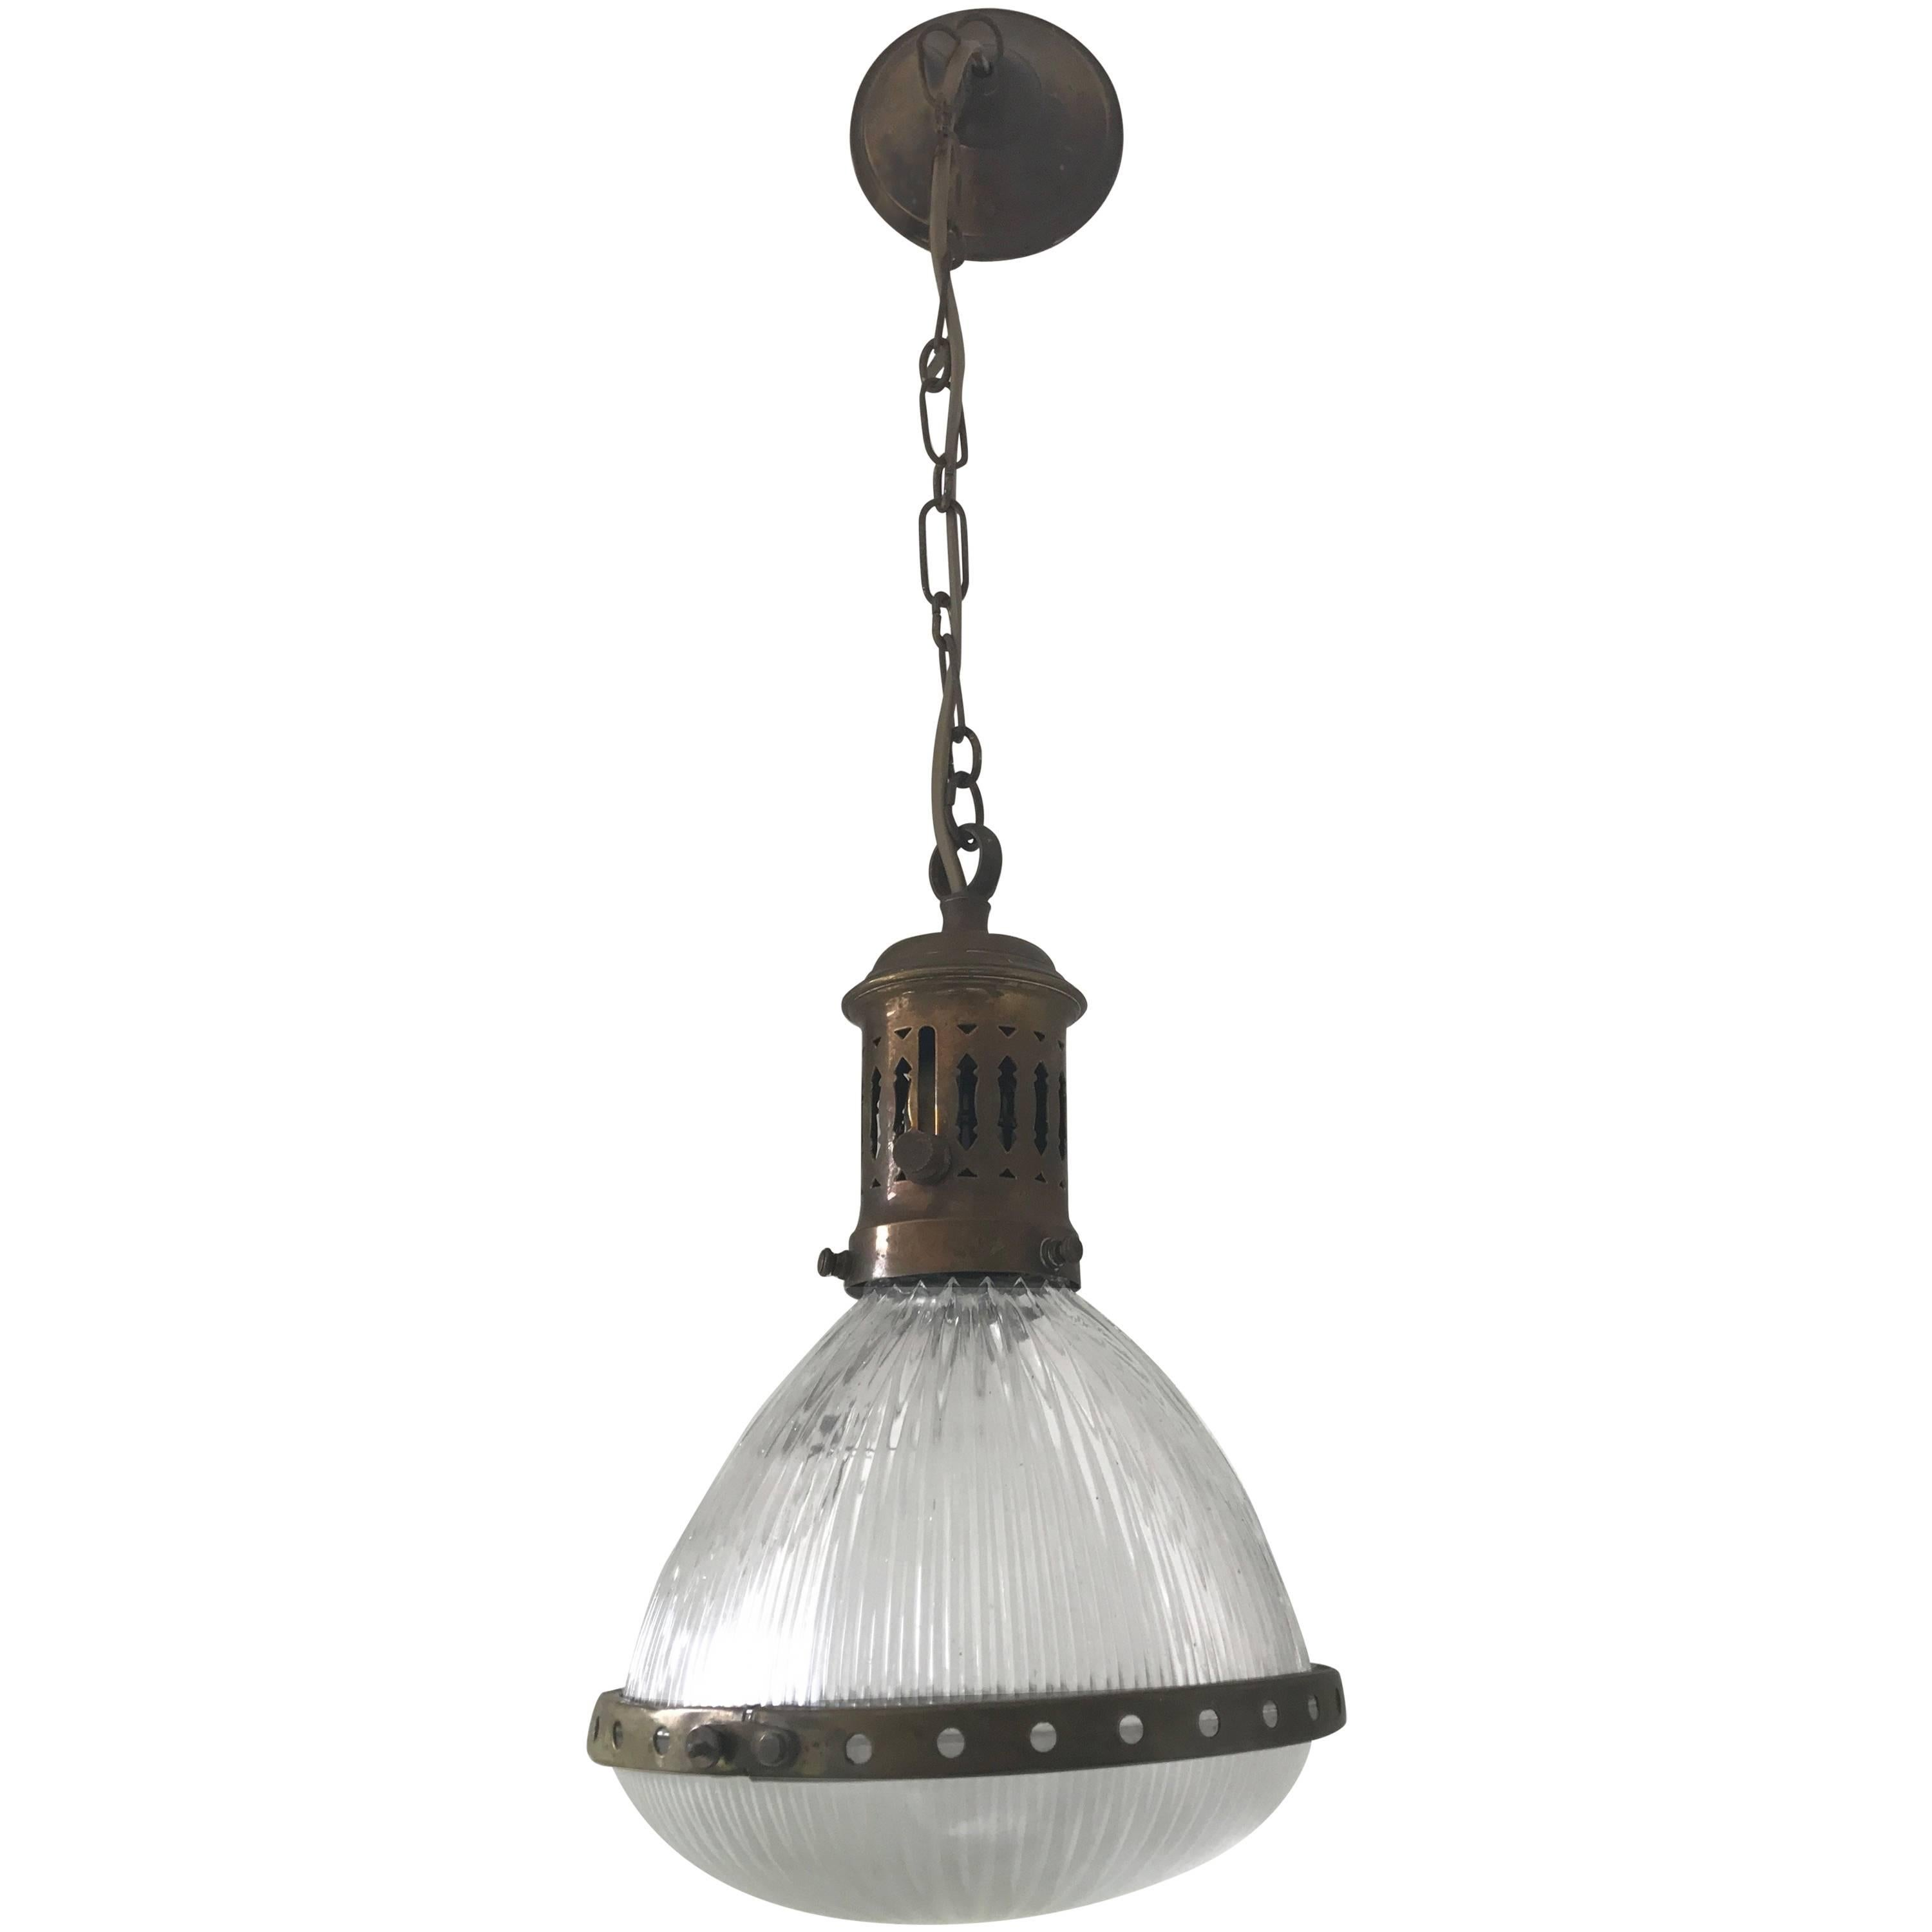 Small French Art Deco Holophane Glass and Brass Pendant Light Ceiling L&  sc 1 st  1stDibs & Holophane Lighting - 46 For Sale at 1stdibs azcodes.com